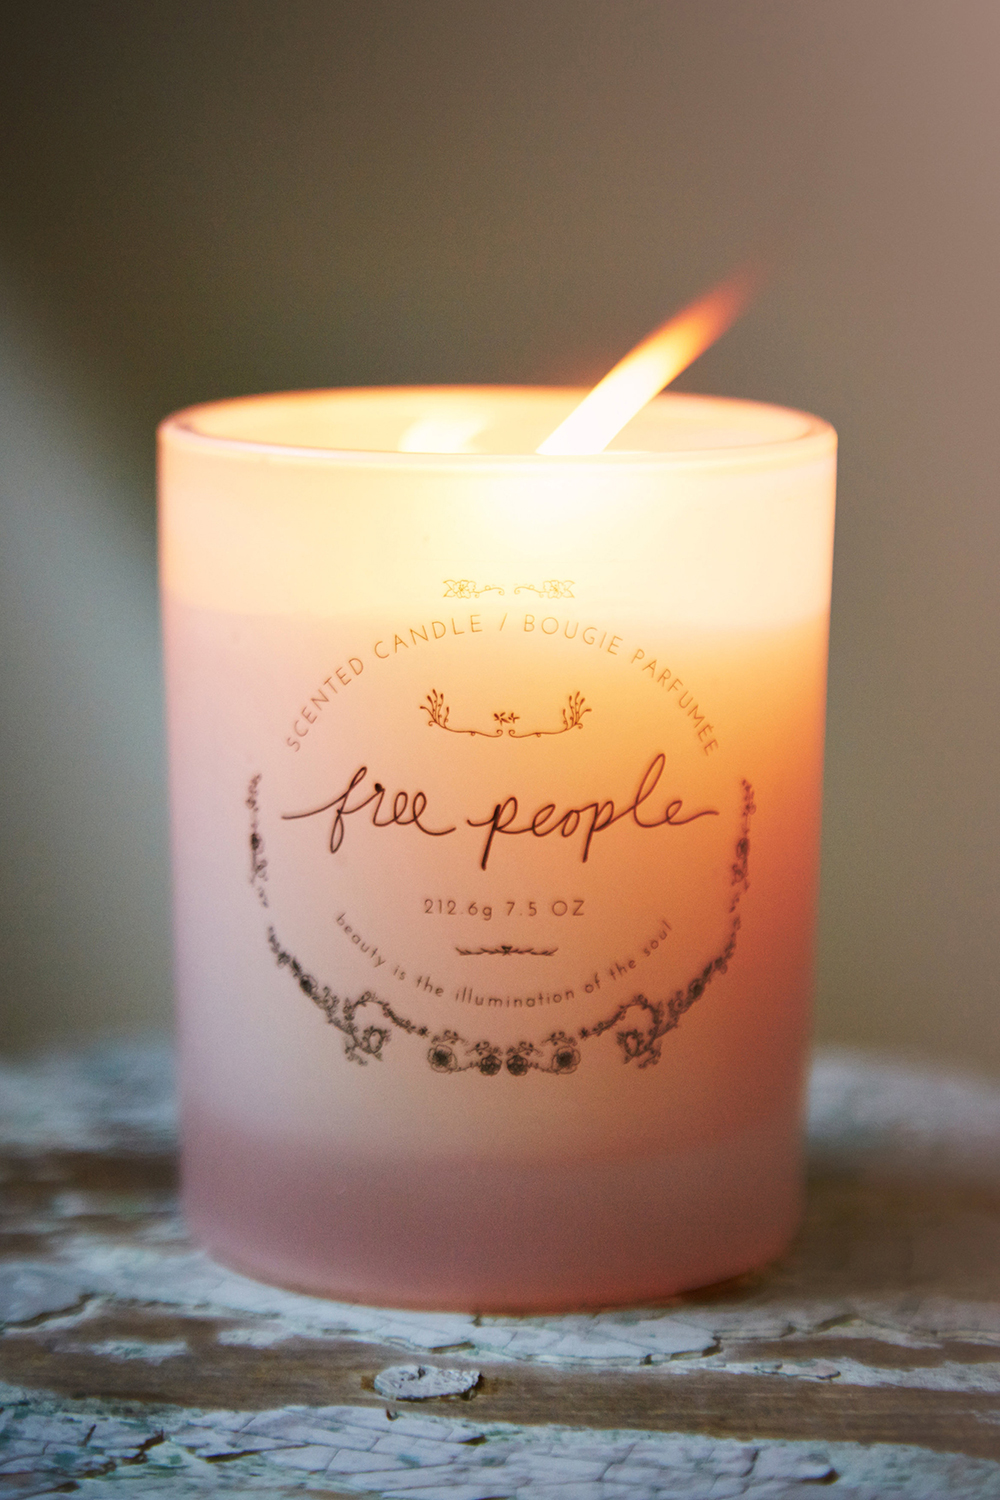 Candle from Free People